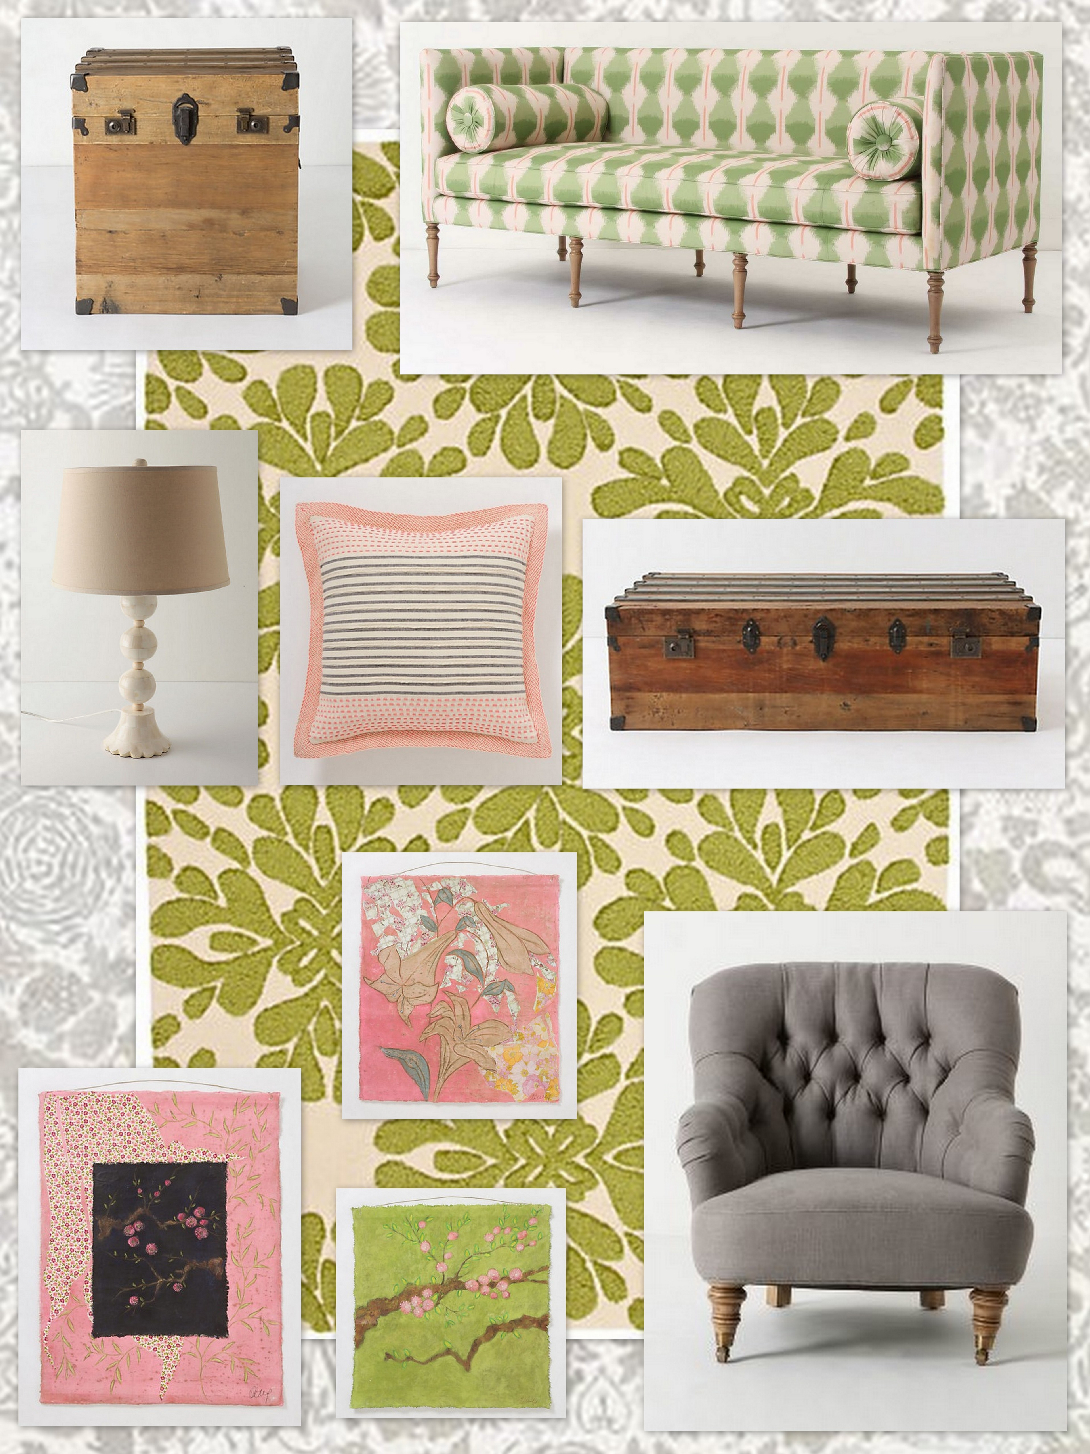 Anthropologie living room - Gafunkyfarmhouse